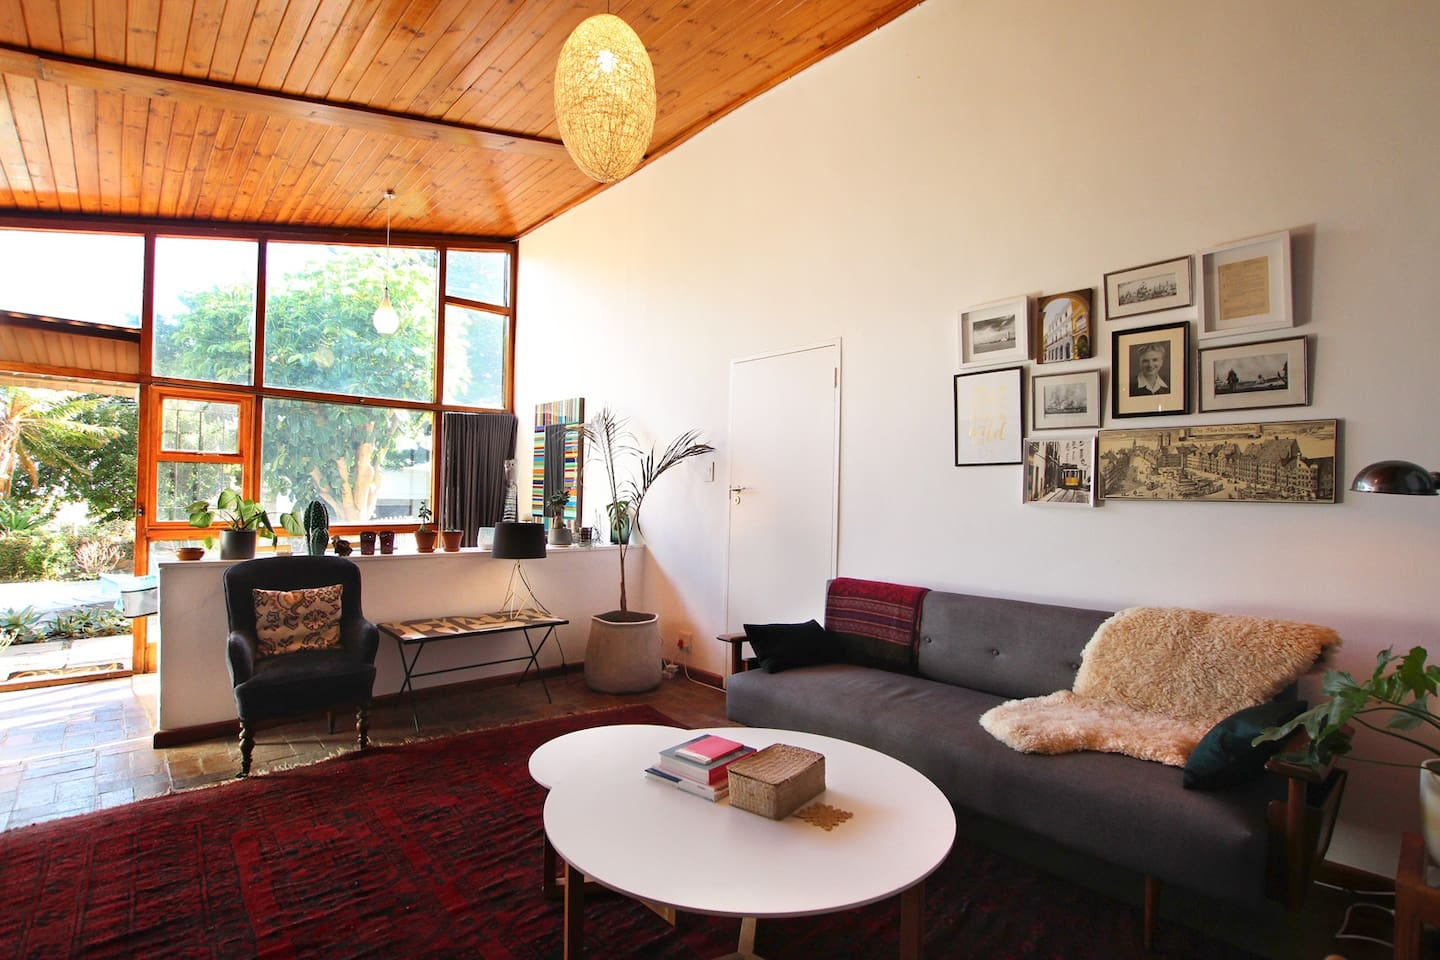 Lounge with couch and two arm chairs, coffee table, side tables and ambient lighting